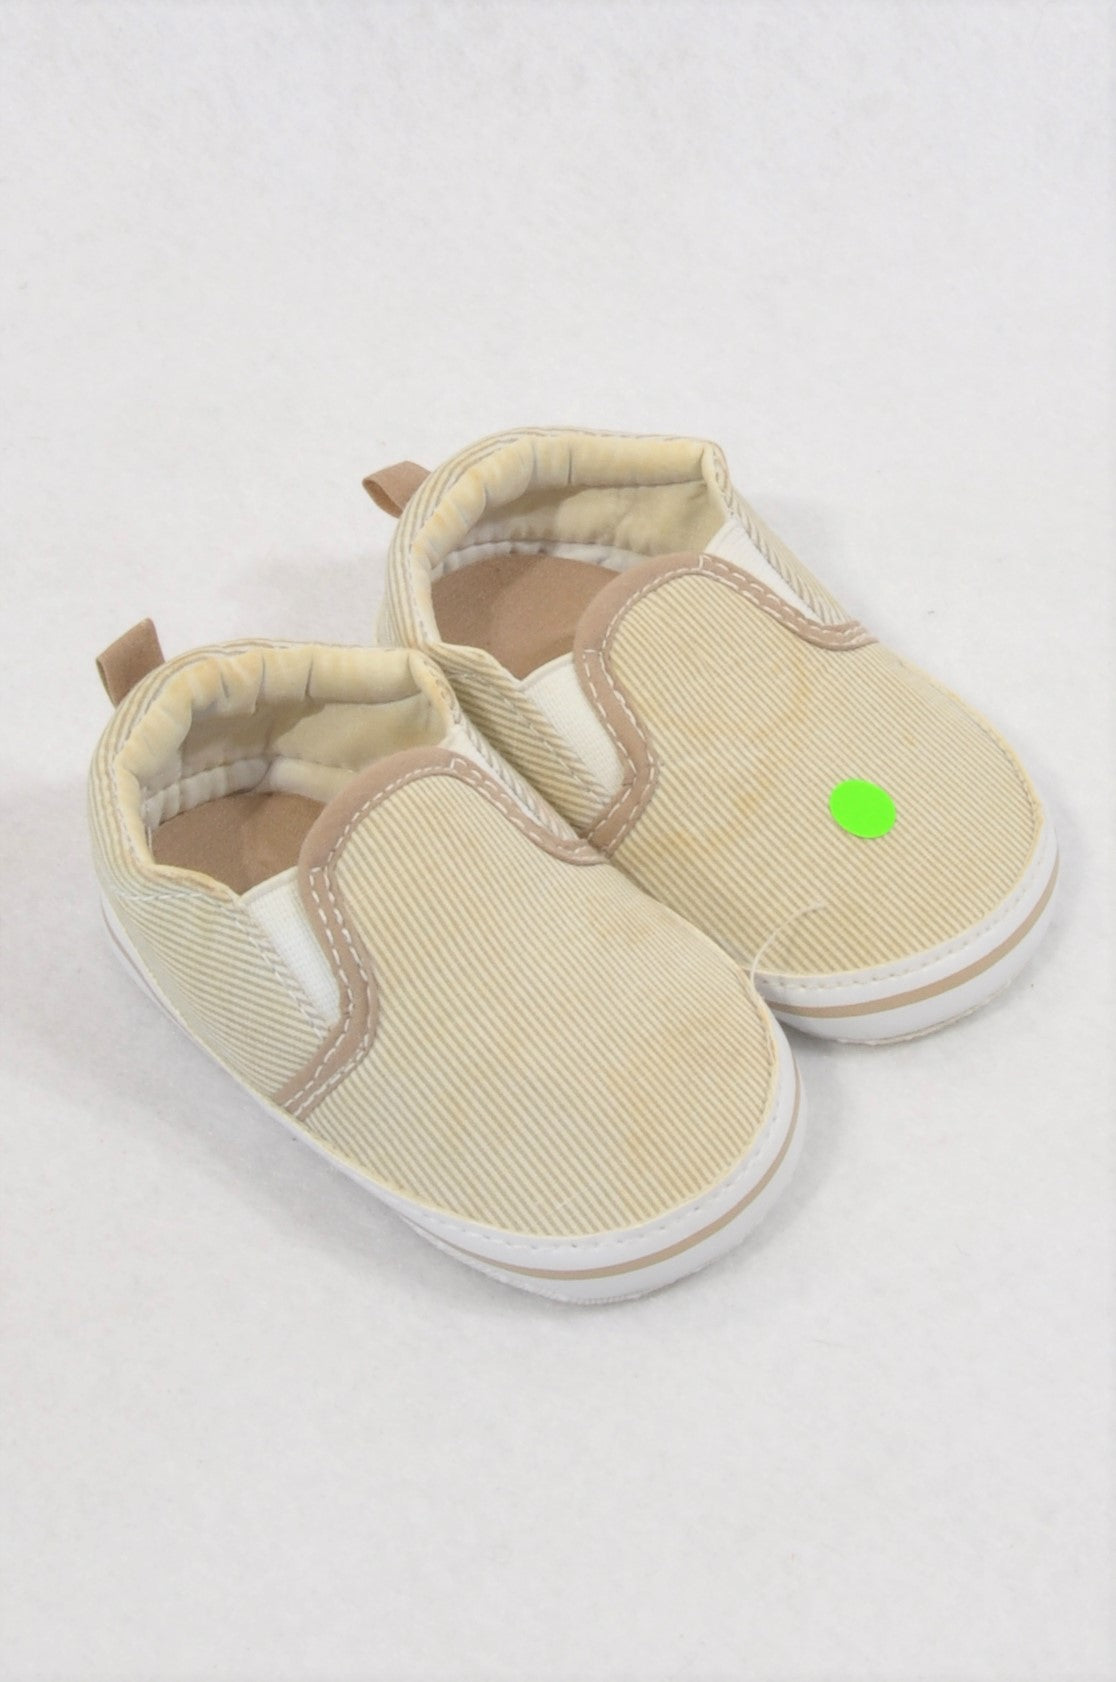 Unbranded Size 1 Beige Pinstripe Shoes Unisex 3-6 months